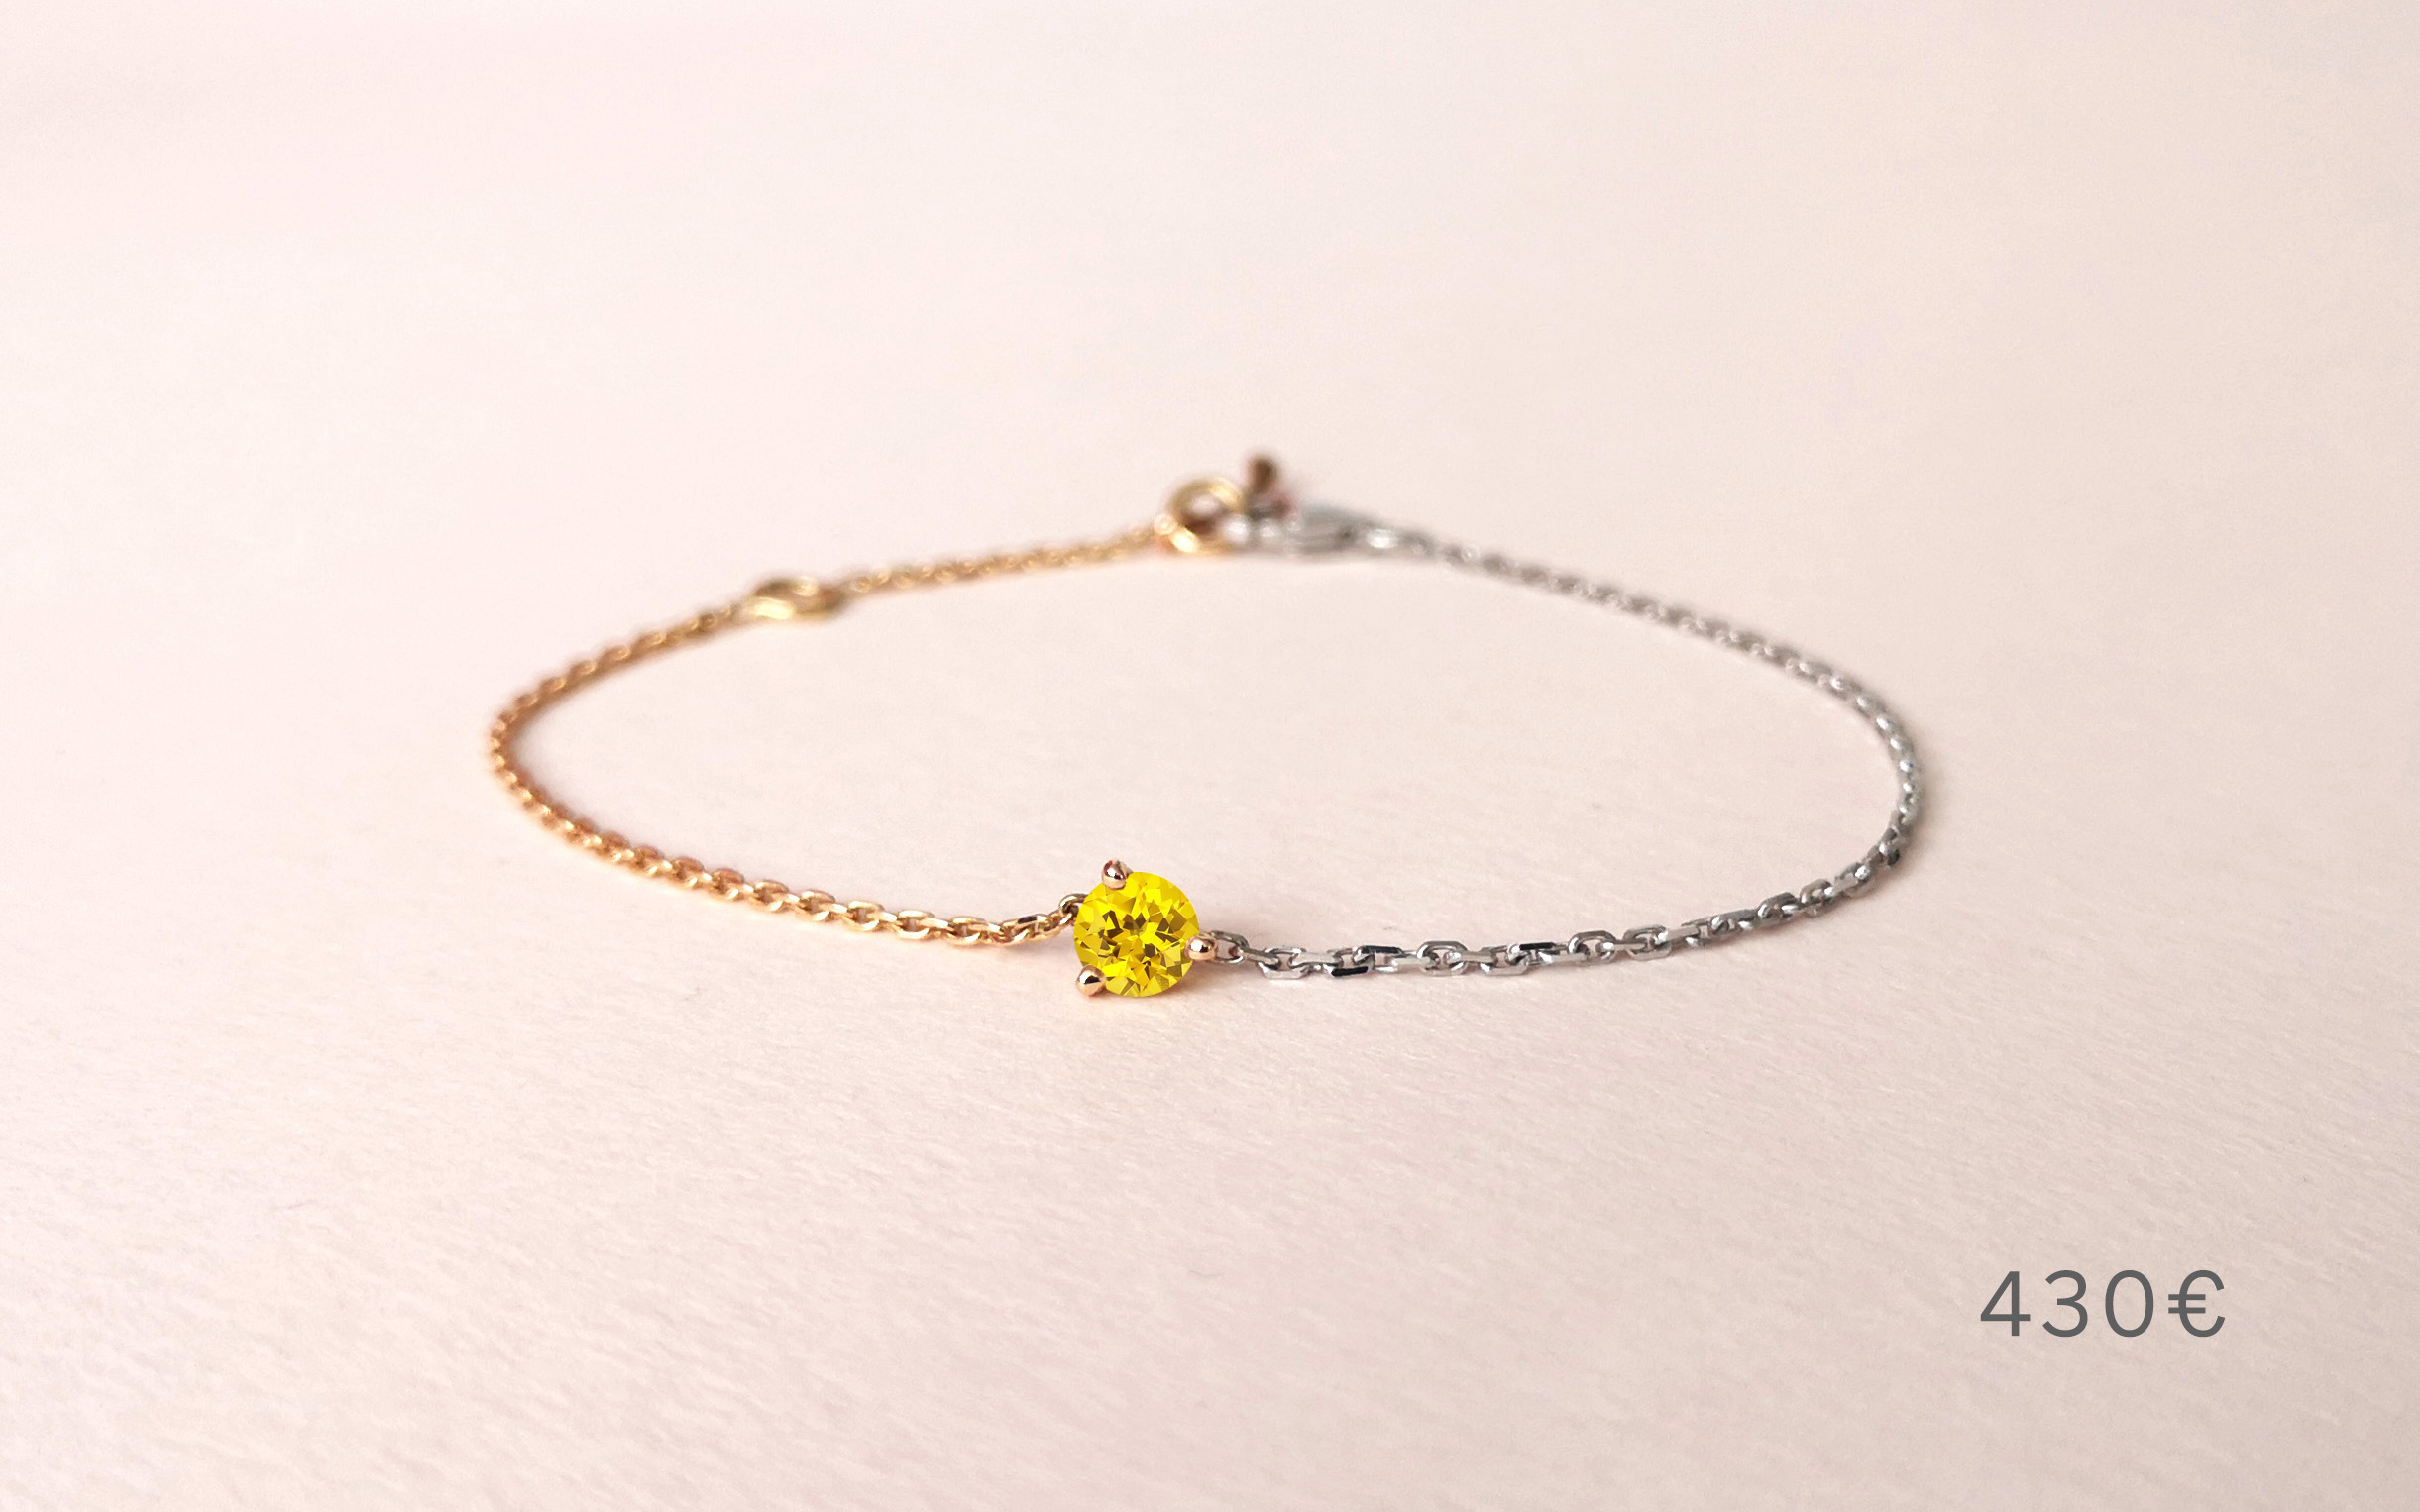 Bracelet Douce Echappée saphir jaune, Collection Weekends Express - Courpré Joaillerie - The Explorative Fine Jewelry